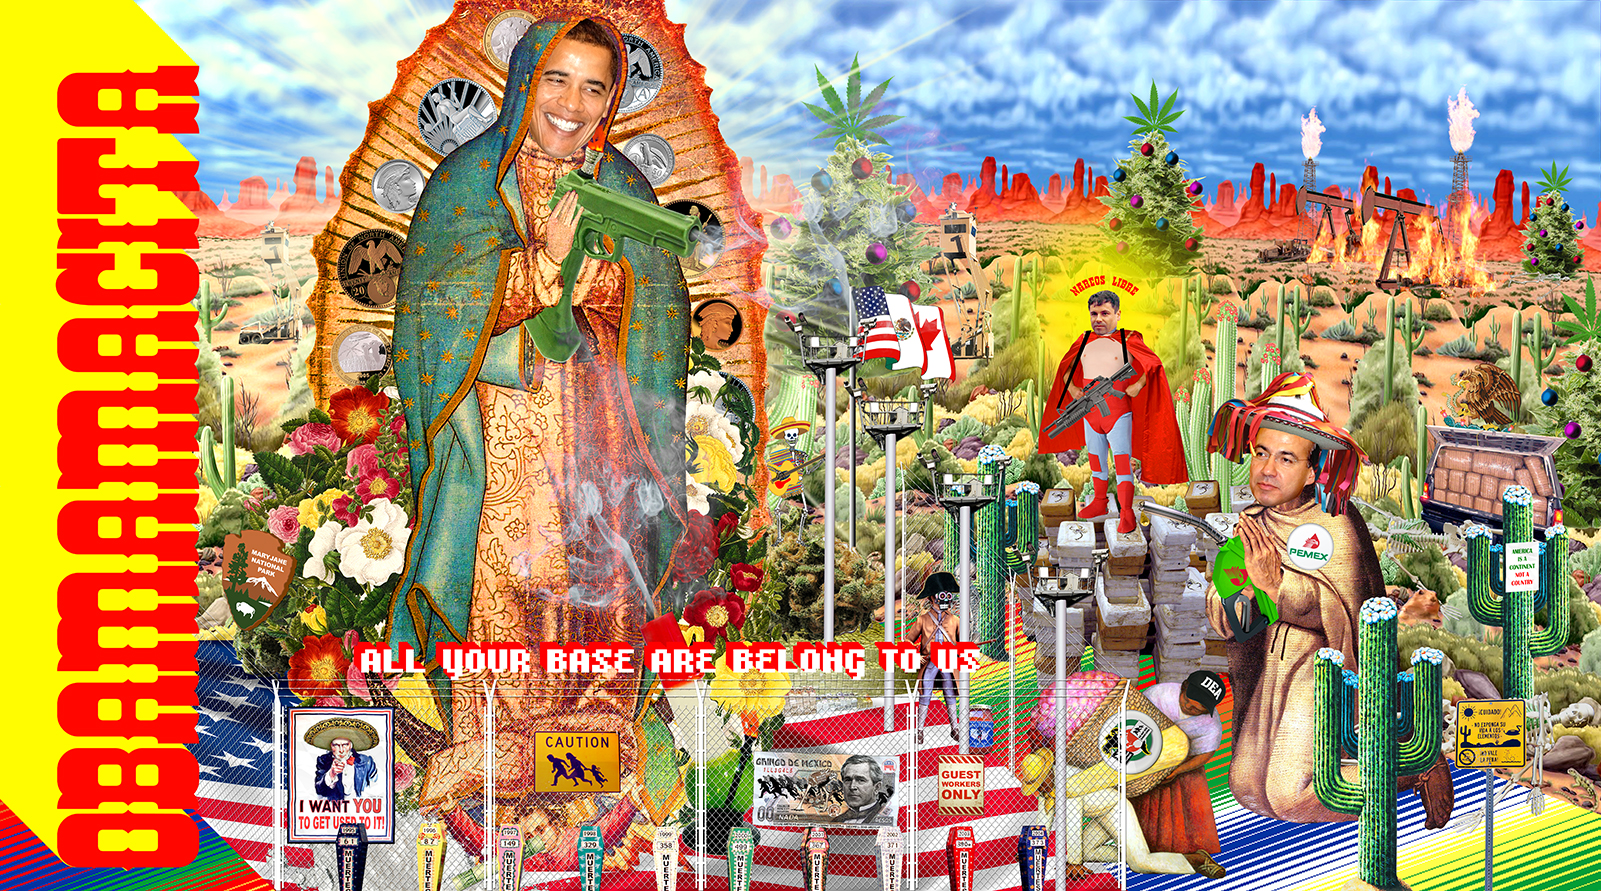 A political collage including an image of Barak Obama as Our Lady of Guadalupe dealing with conflict at the Mexico/US border issues.